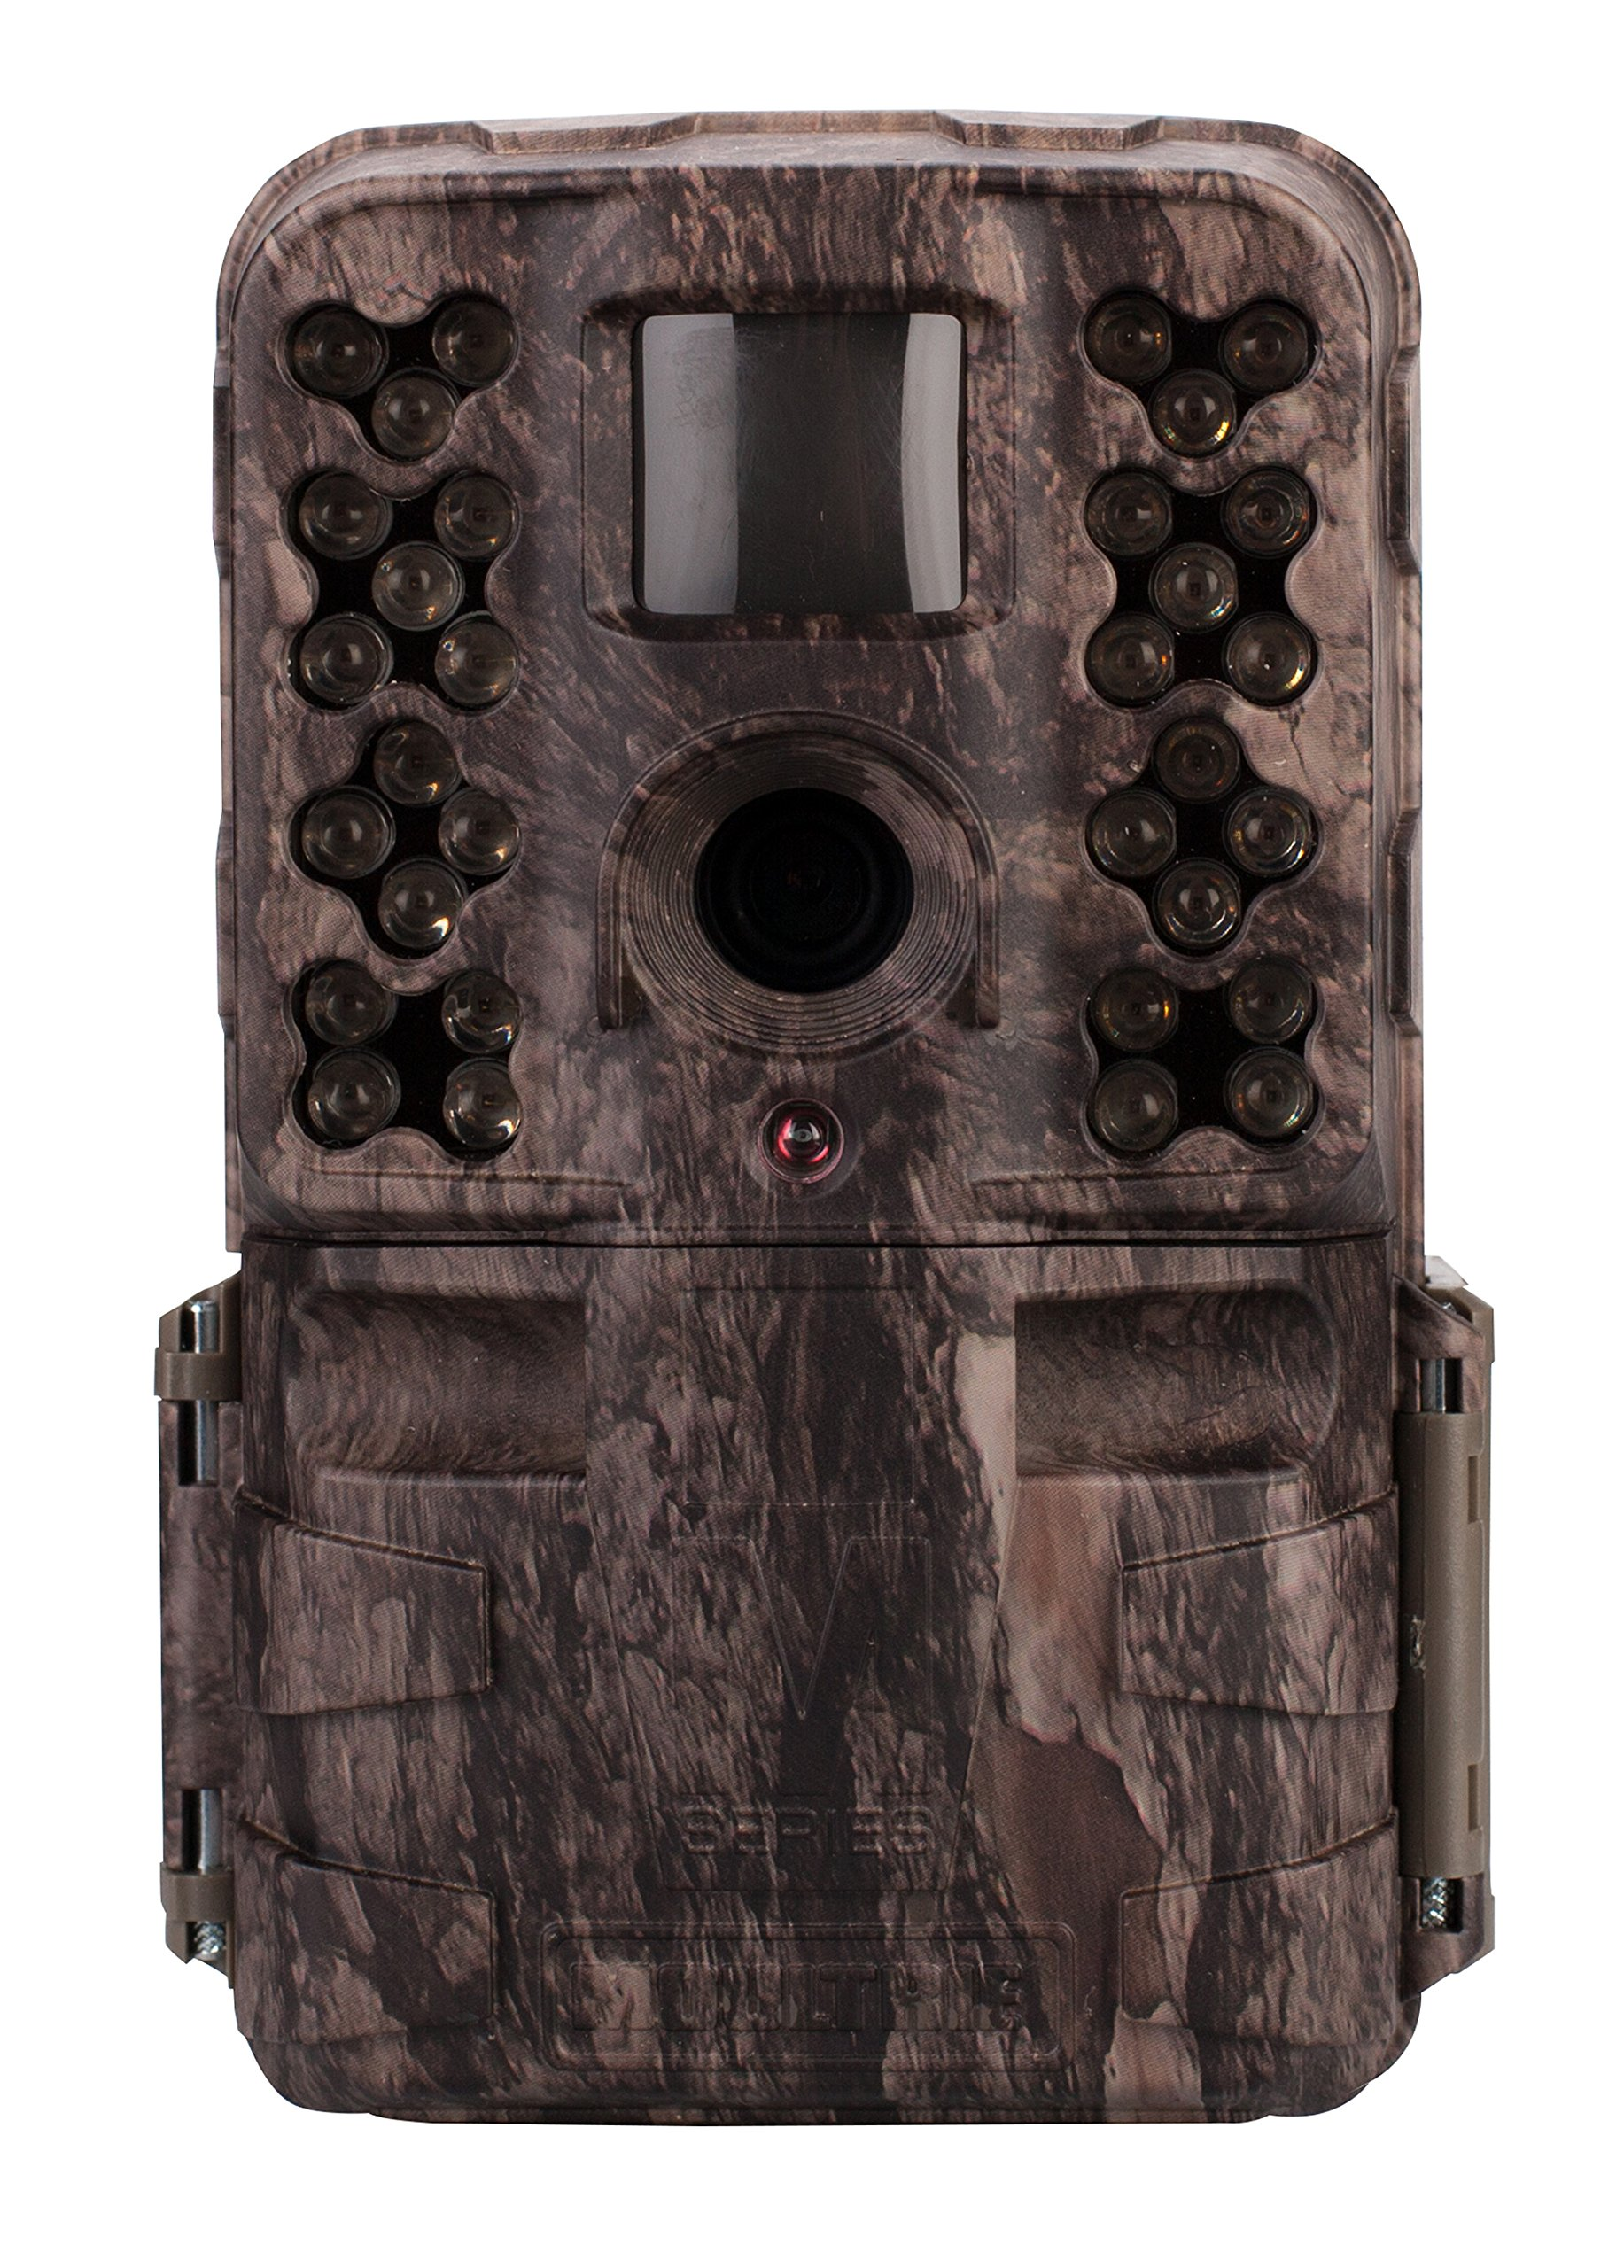 Moultrie M-50i Game Camera (2018) | M-Series |20 MP | 0.3 S Trigger Speed | 1080p Video w Audio | Compatible with Moultrie Mobile (Sold Separately) by Moultrie